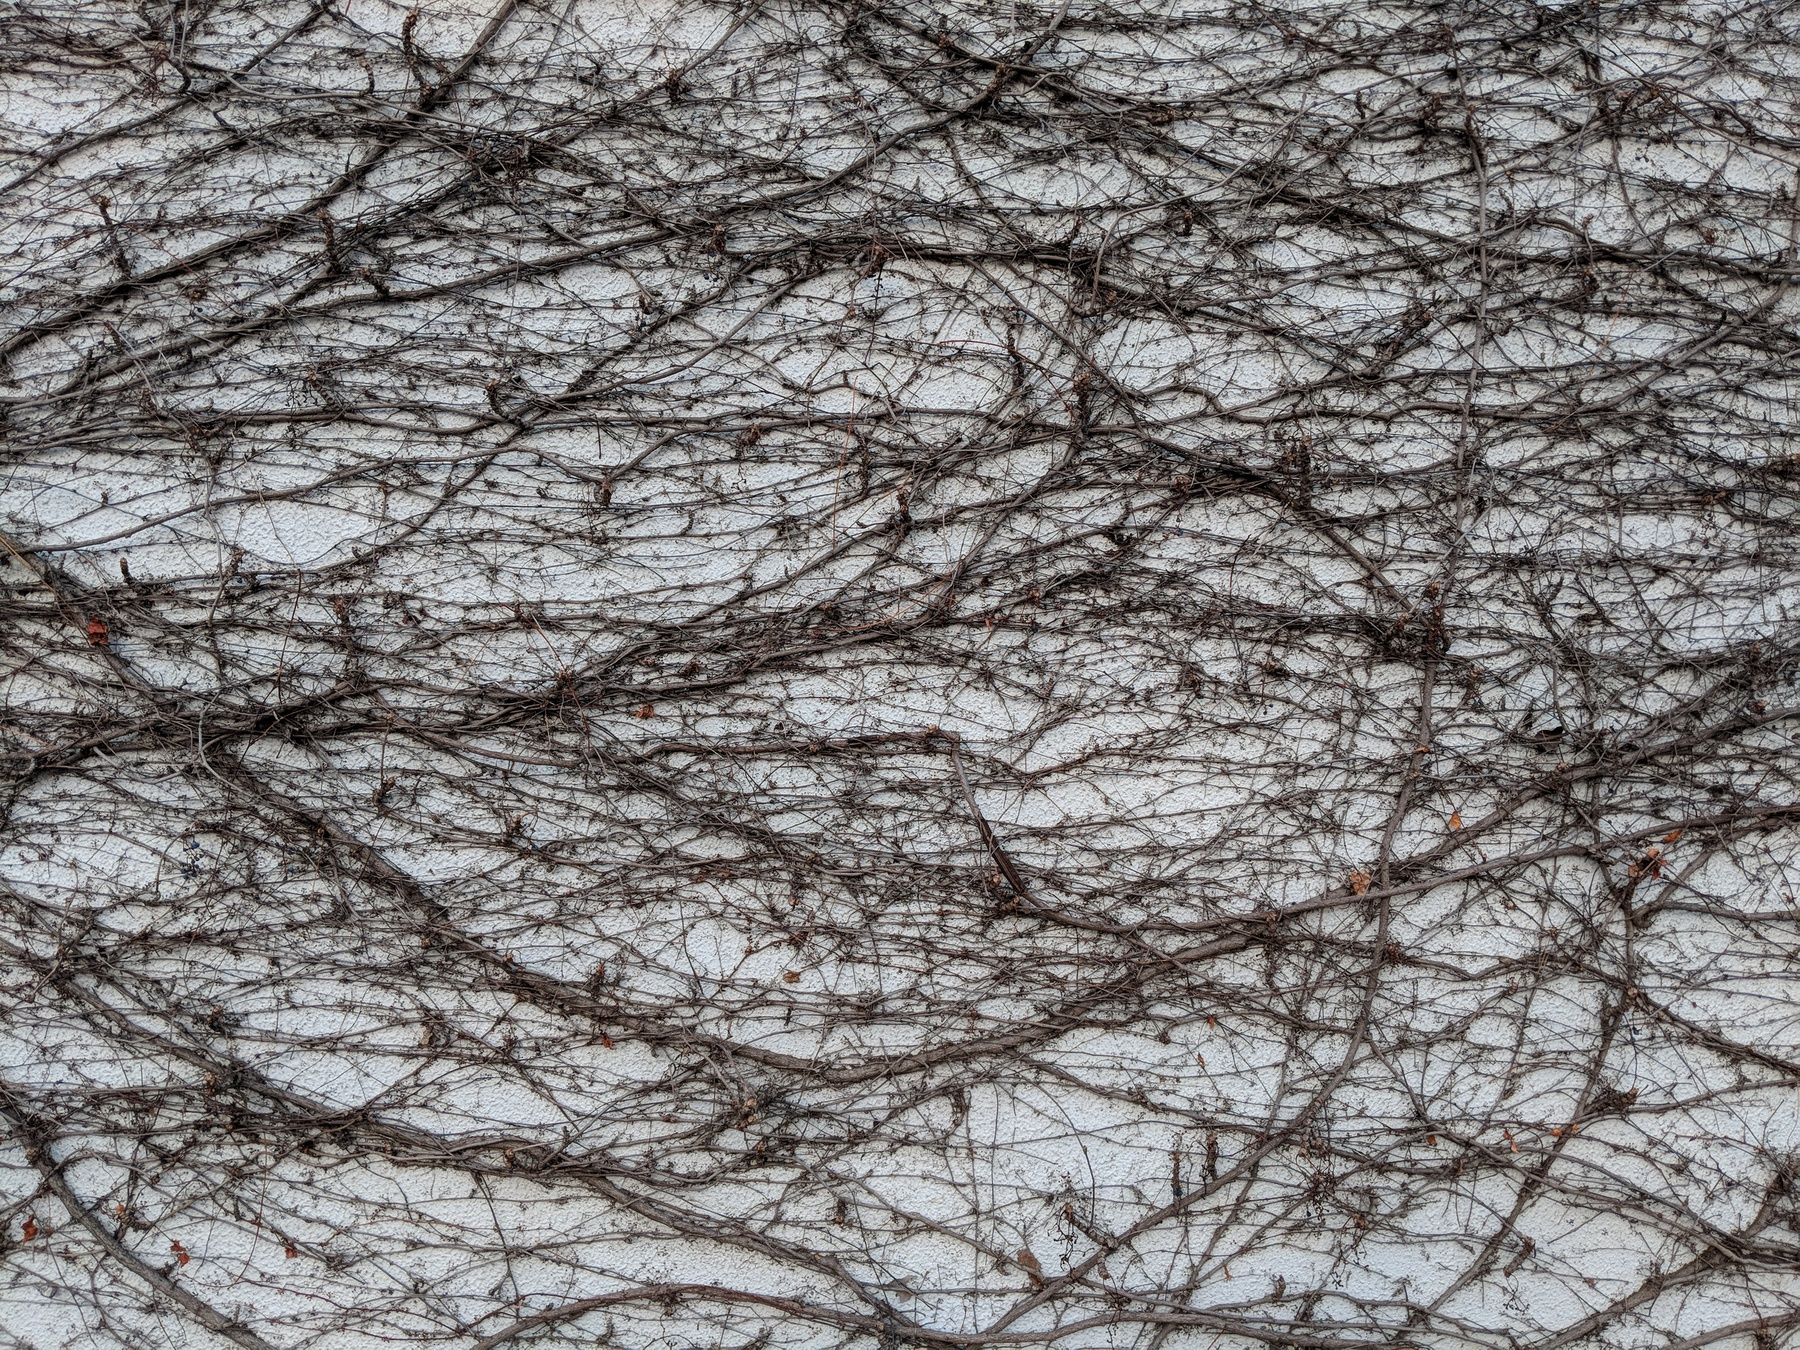 Bare, brown vines cover a white wall in a dense webbing.